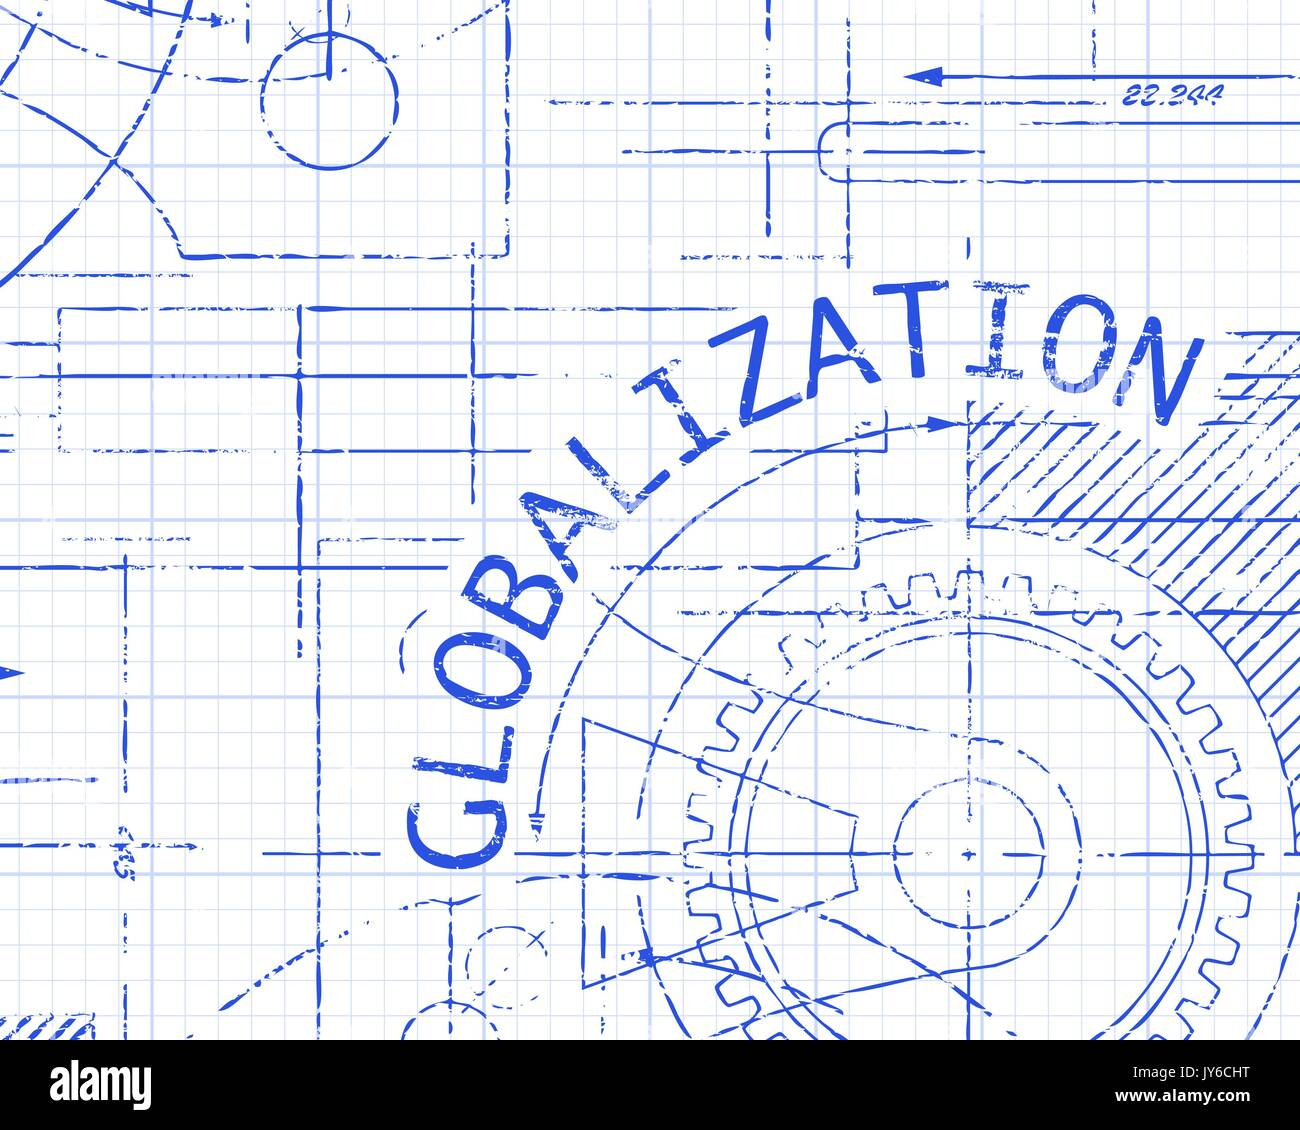 Globalization word on graph paper background illustration stock globalization word on graph paper background illustration ccuart Gallery